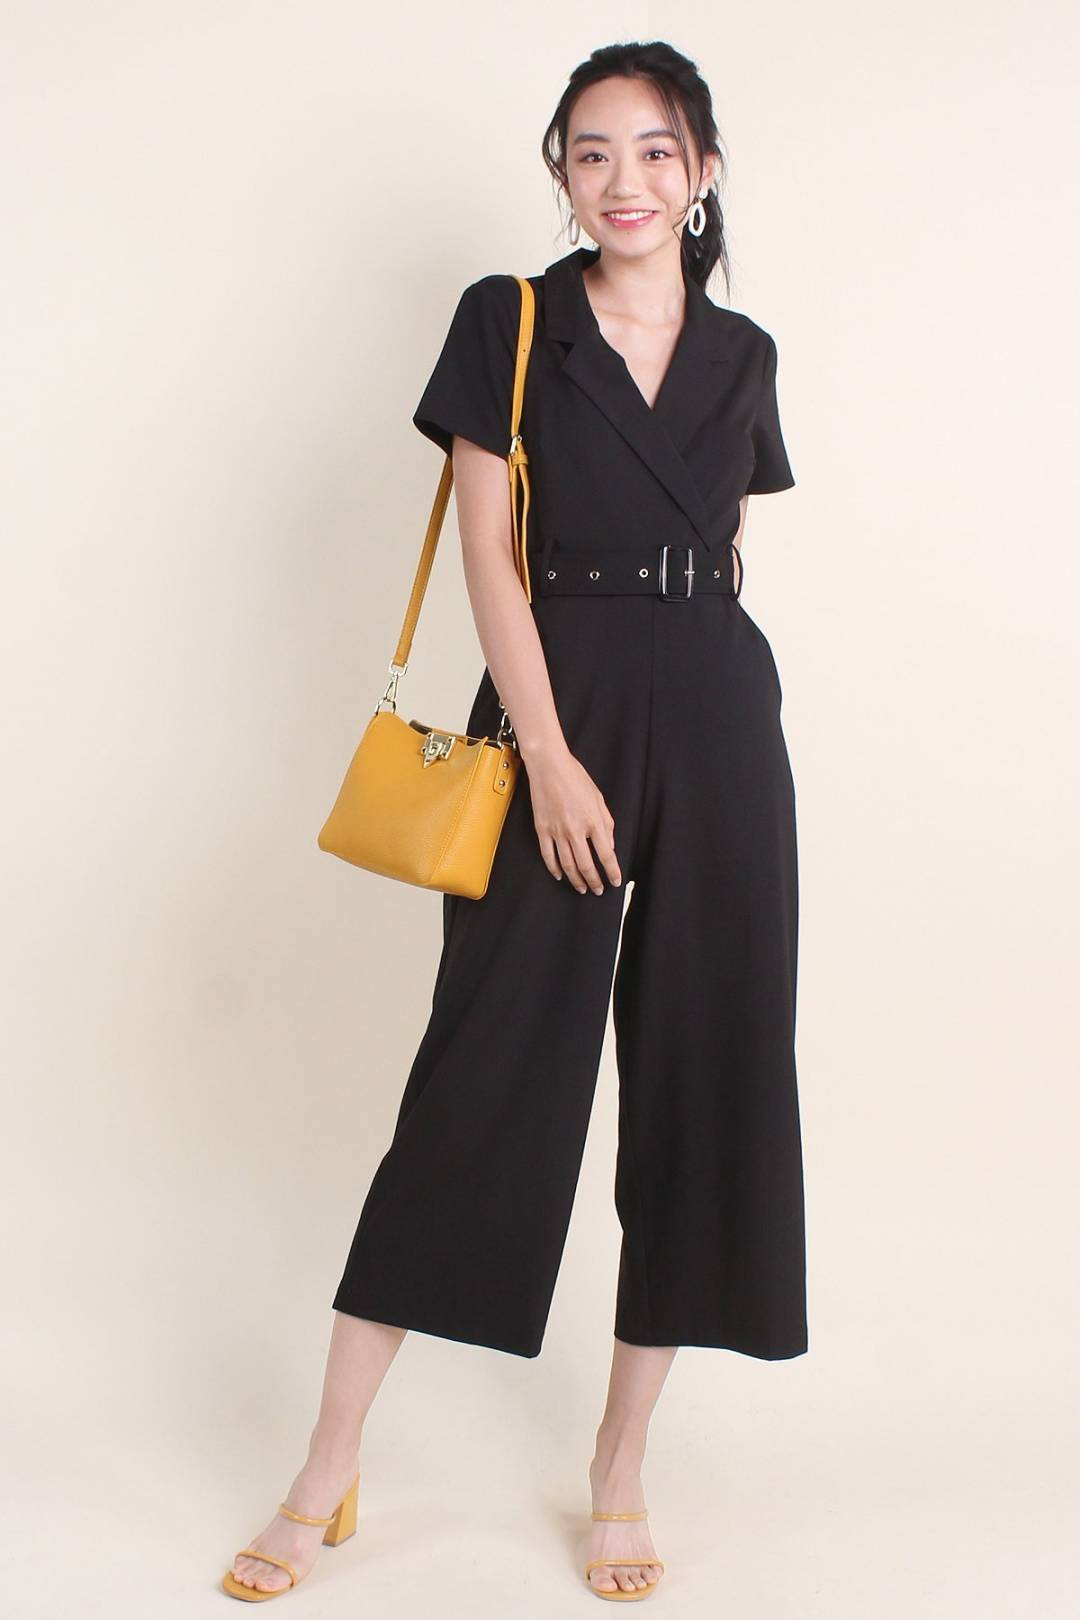 VALENCIA UTILITY BELTED JUMPSUIT IN BLACK [S/M/L/XL]